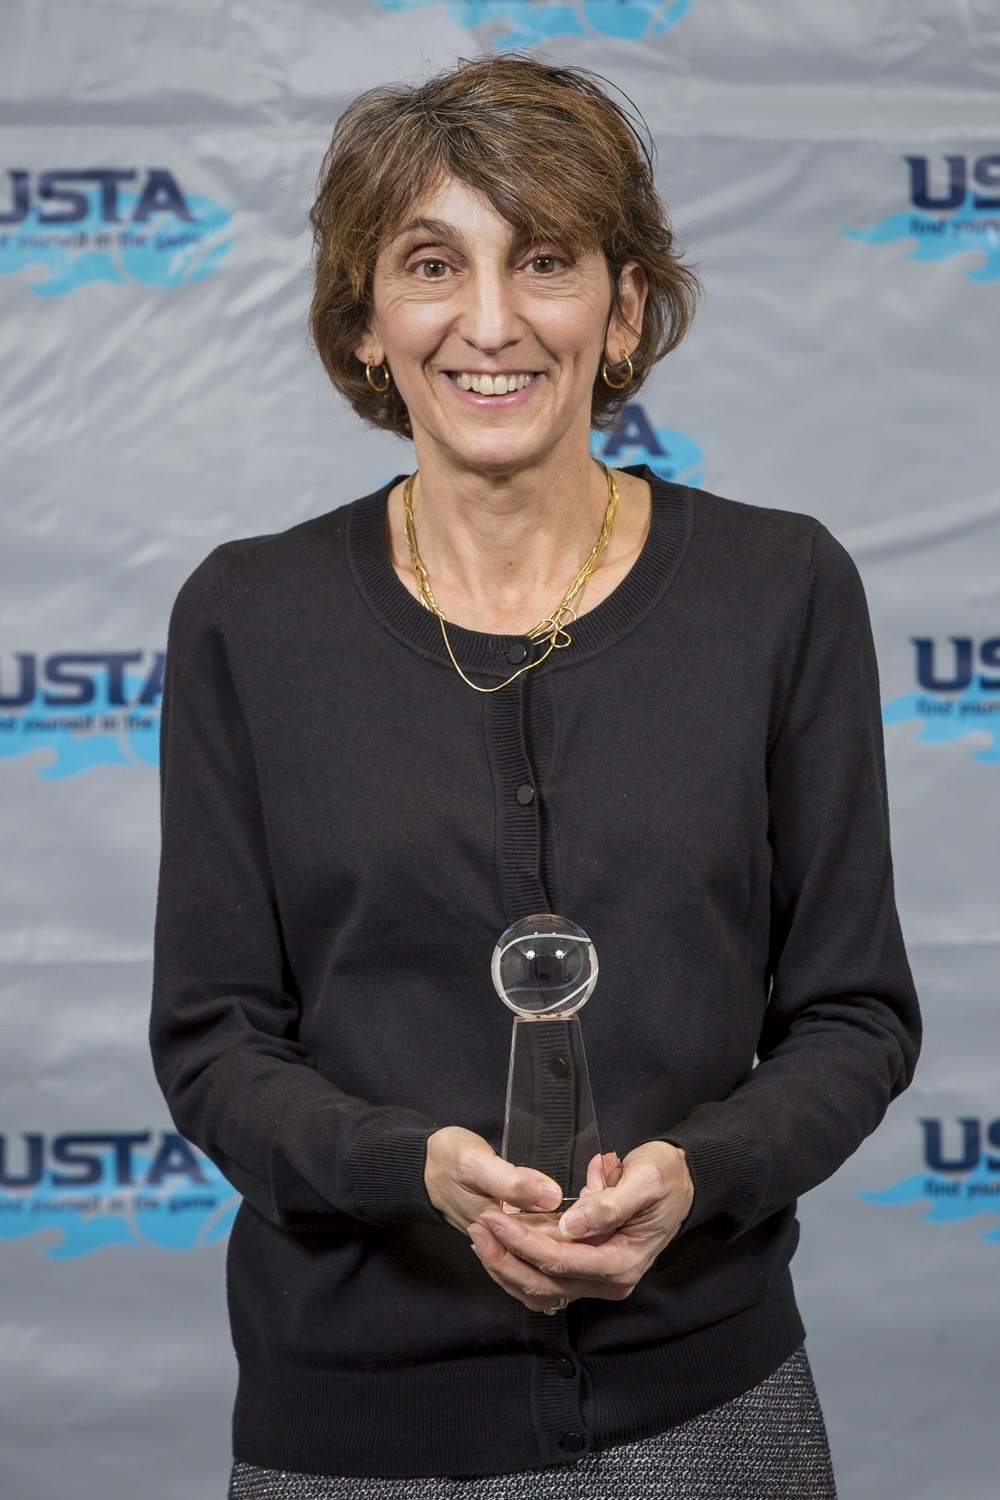 Marci_Silverman_-_2017_USTA_Georgia_JTT_LLC_of_the_Year